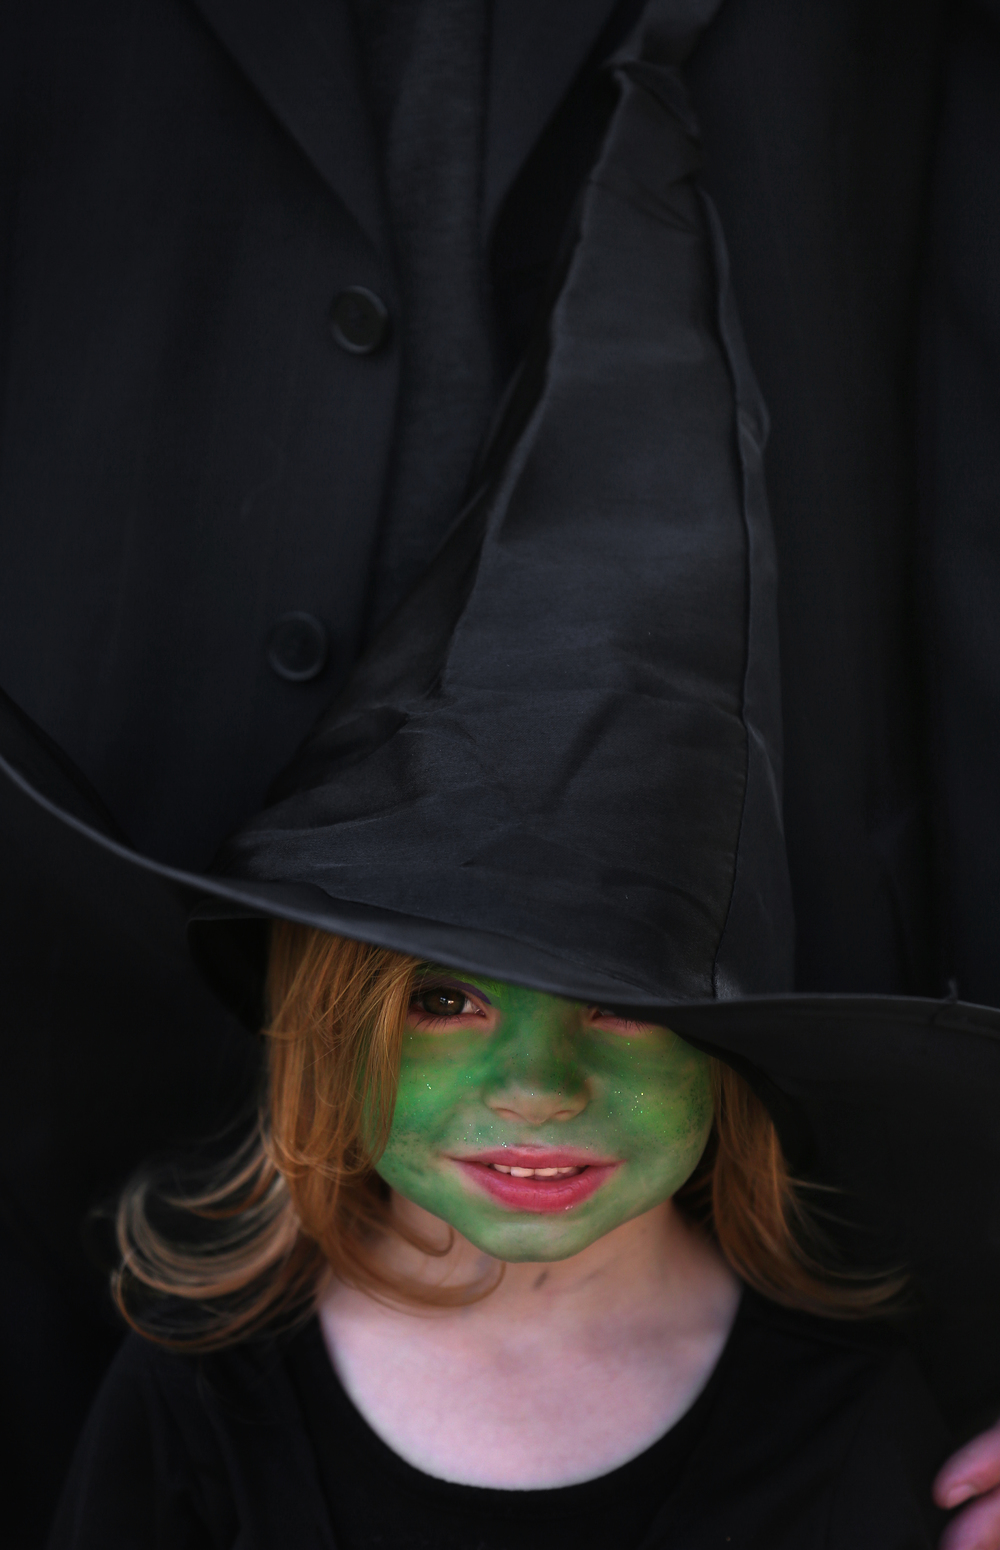 Even with luminous green makeup, 5-year-old Sophia Stark of Pawnee insisted folks know she was a good witch. David Spencer/The State Journal-Register